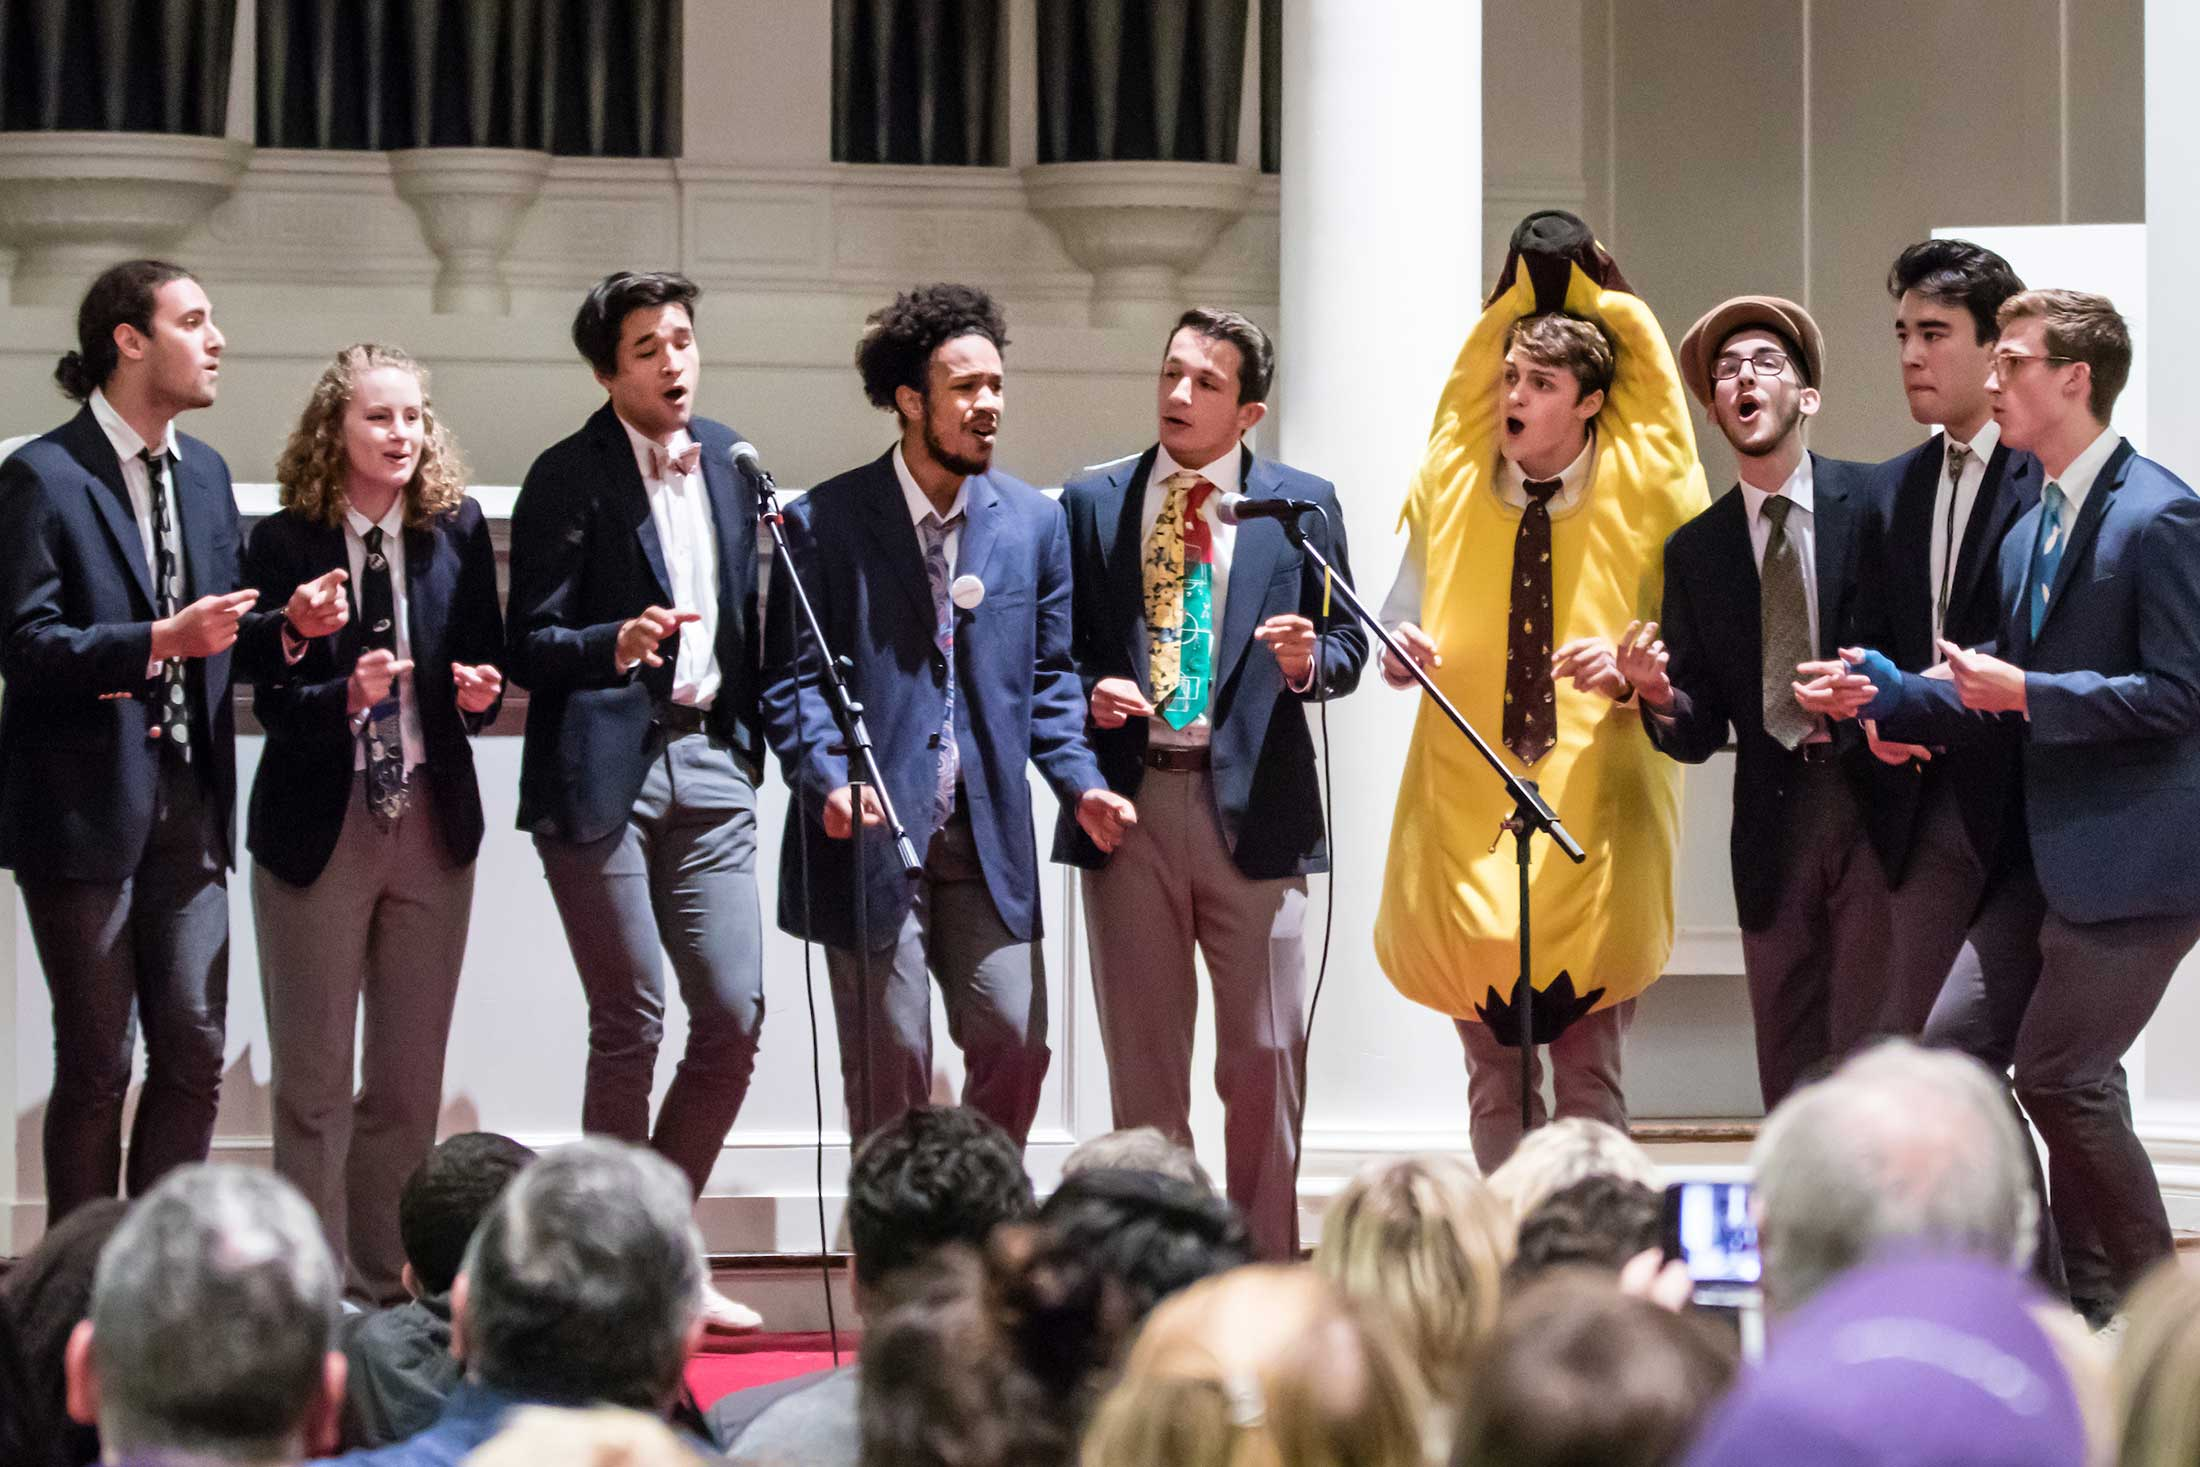 An a capella group performs (one member is dressed like a banana)